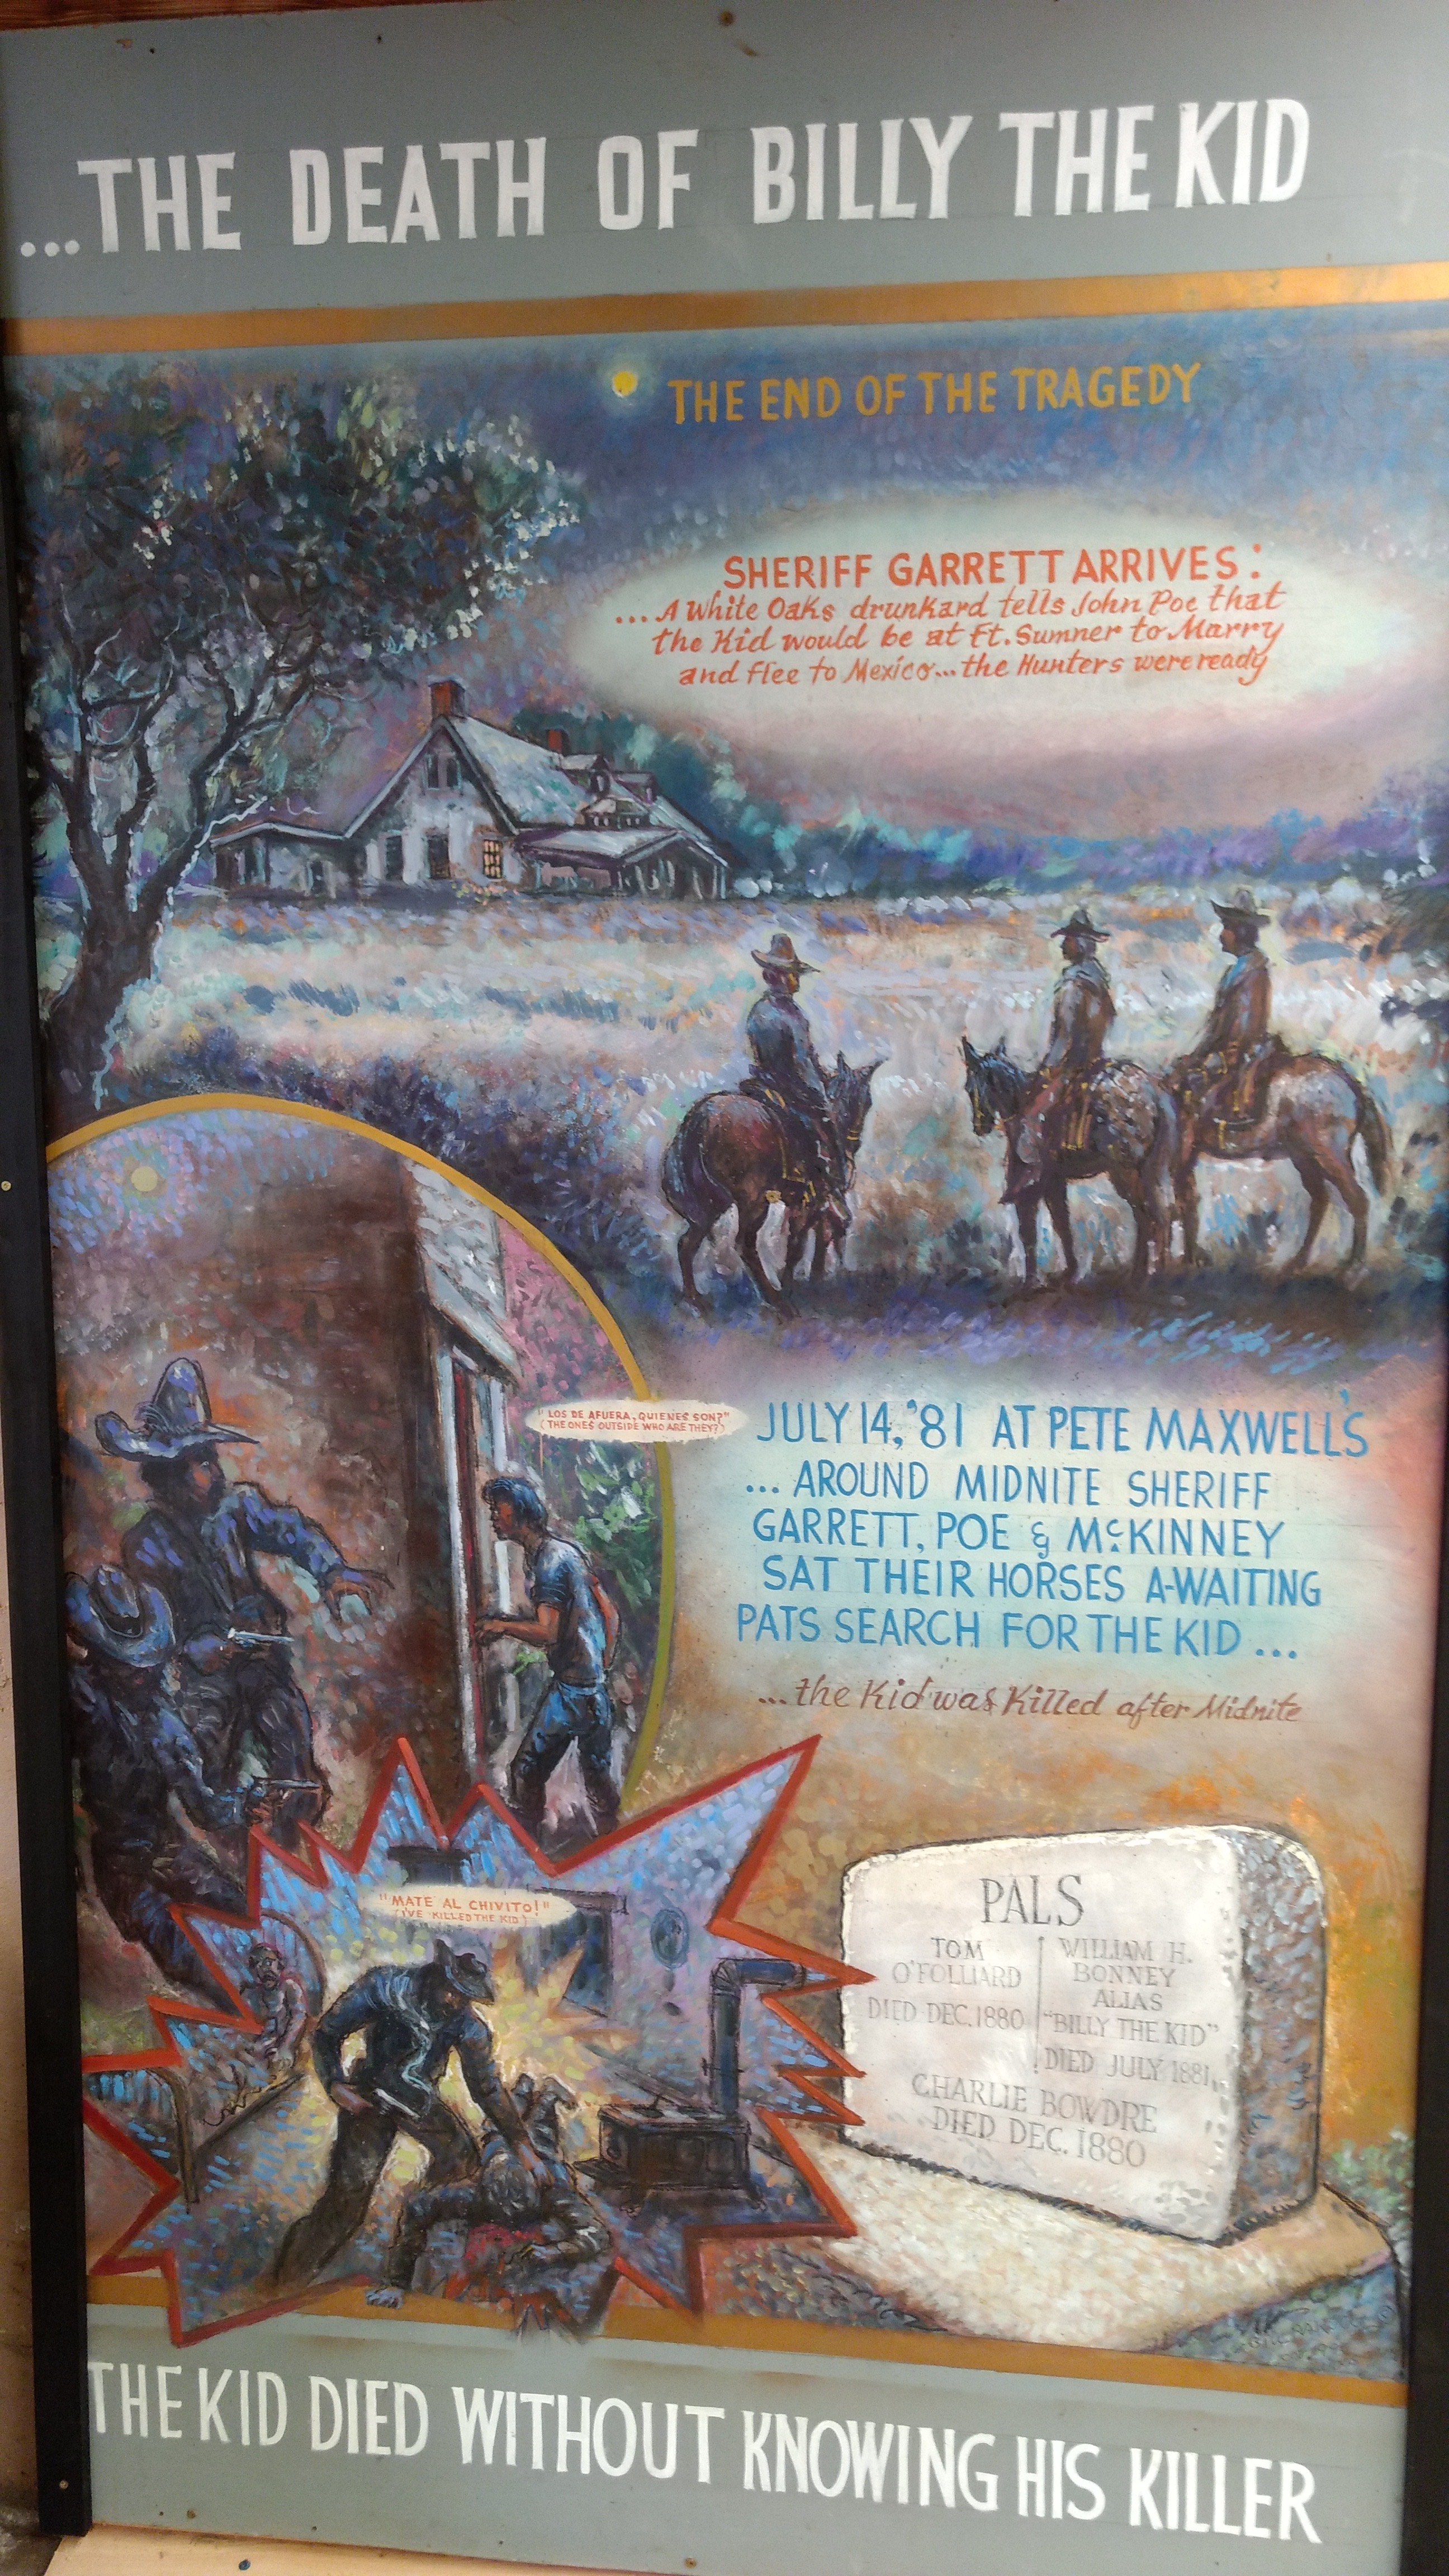 The Death of Billy the Kid at the hand of Pat Garrett